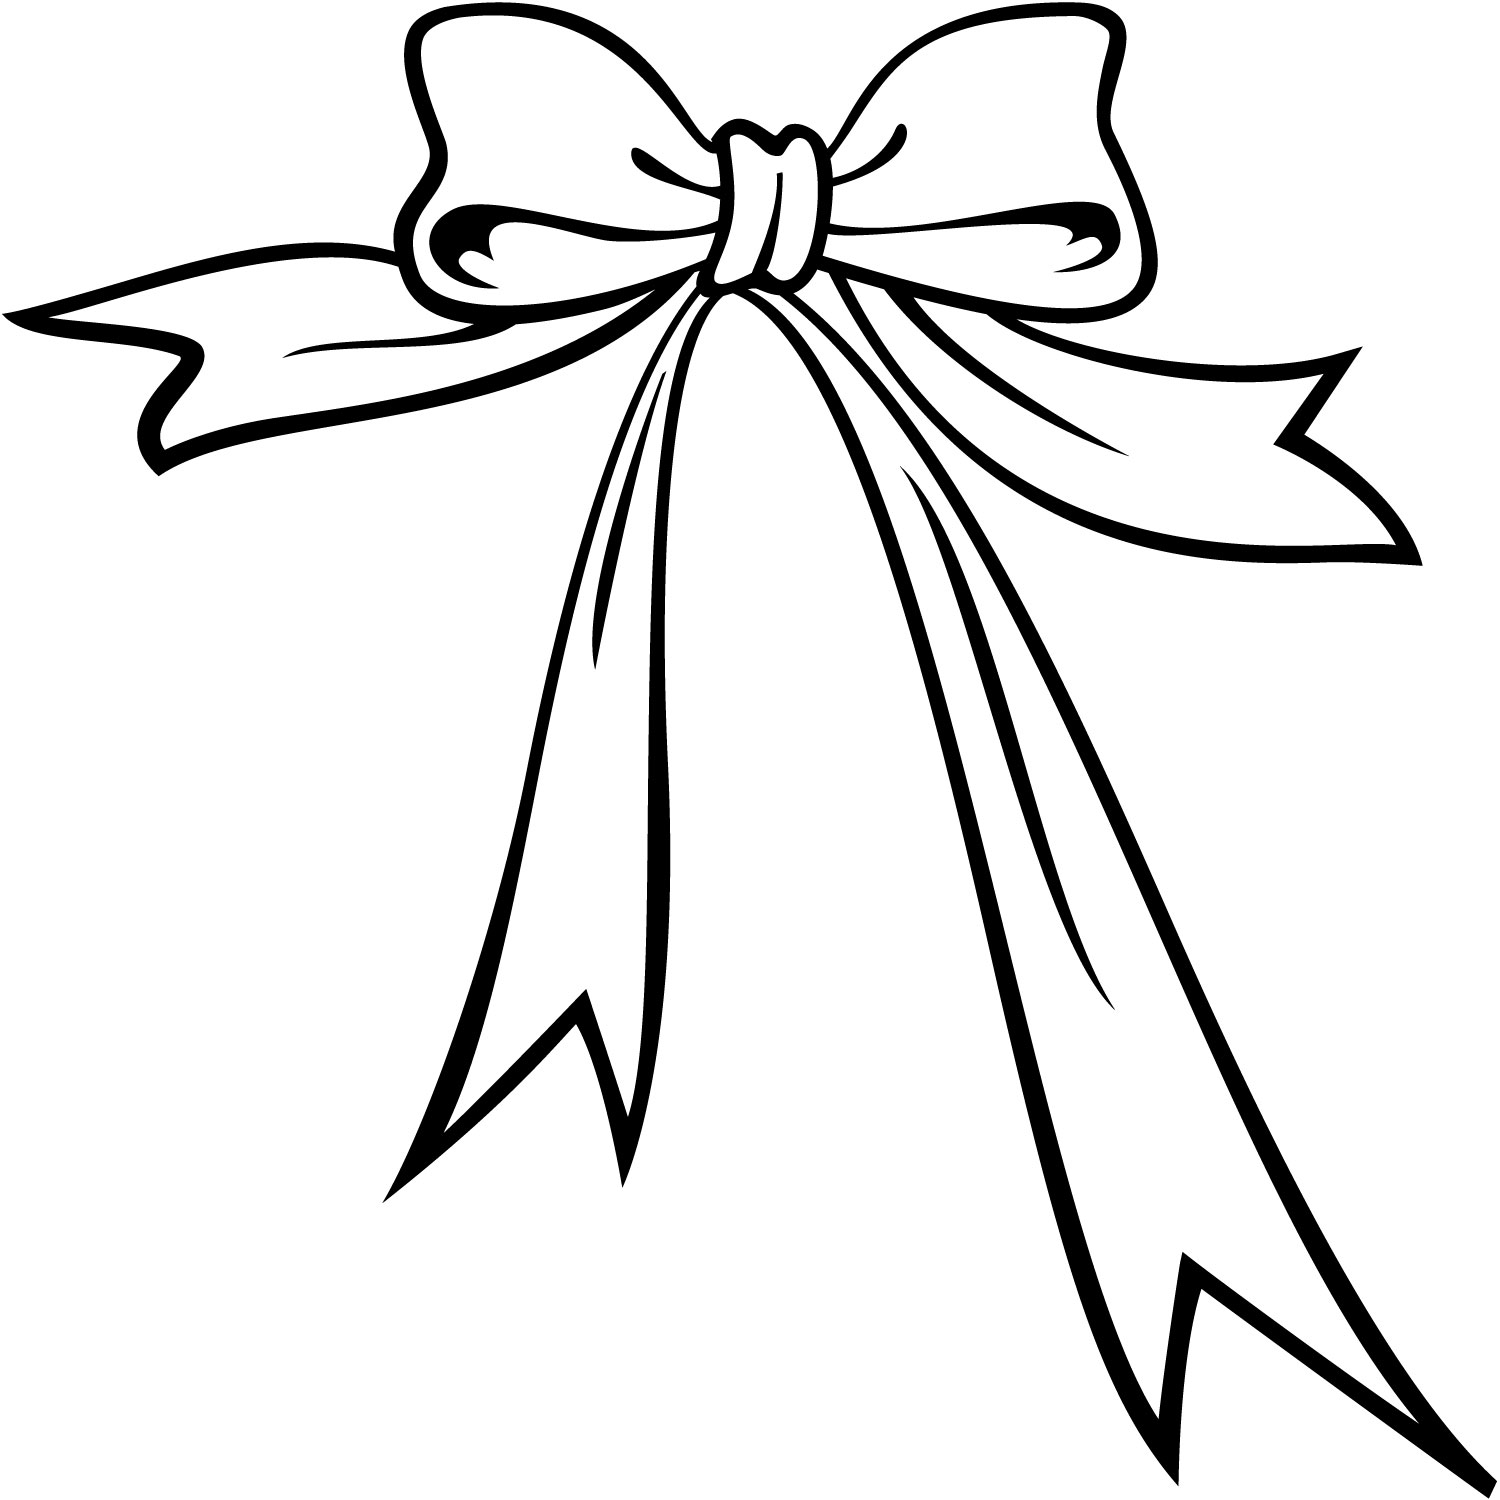 1500x1500 Bow Christmas Ribbon Clipart Free Clipart Images